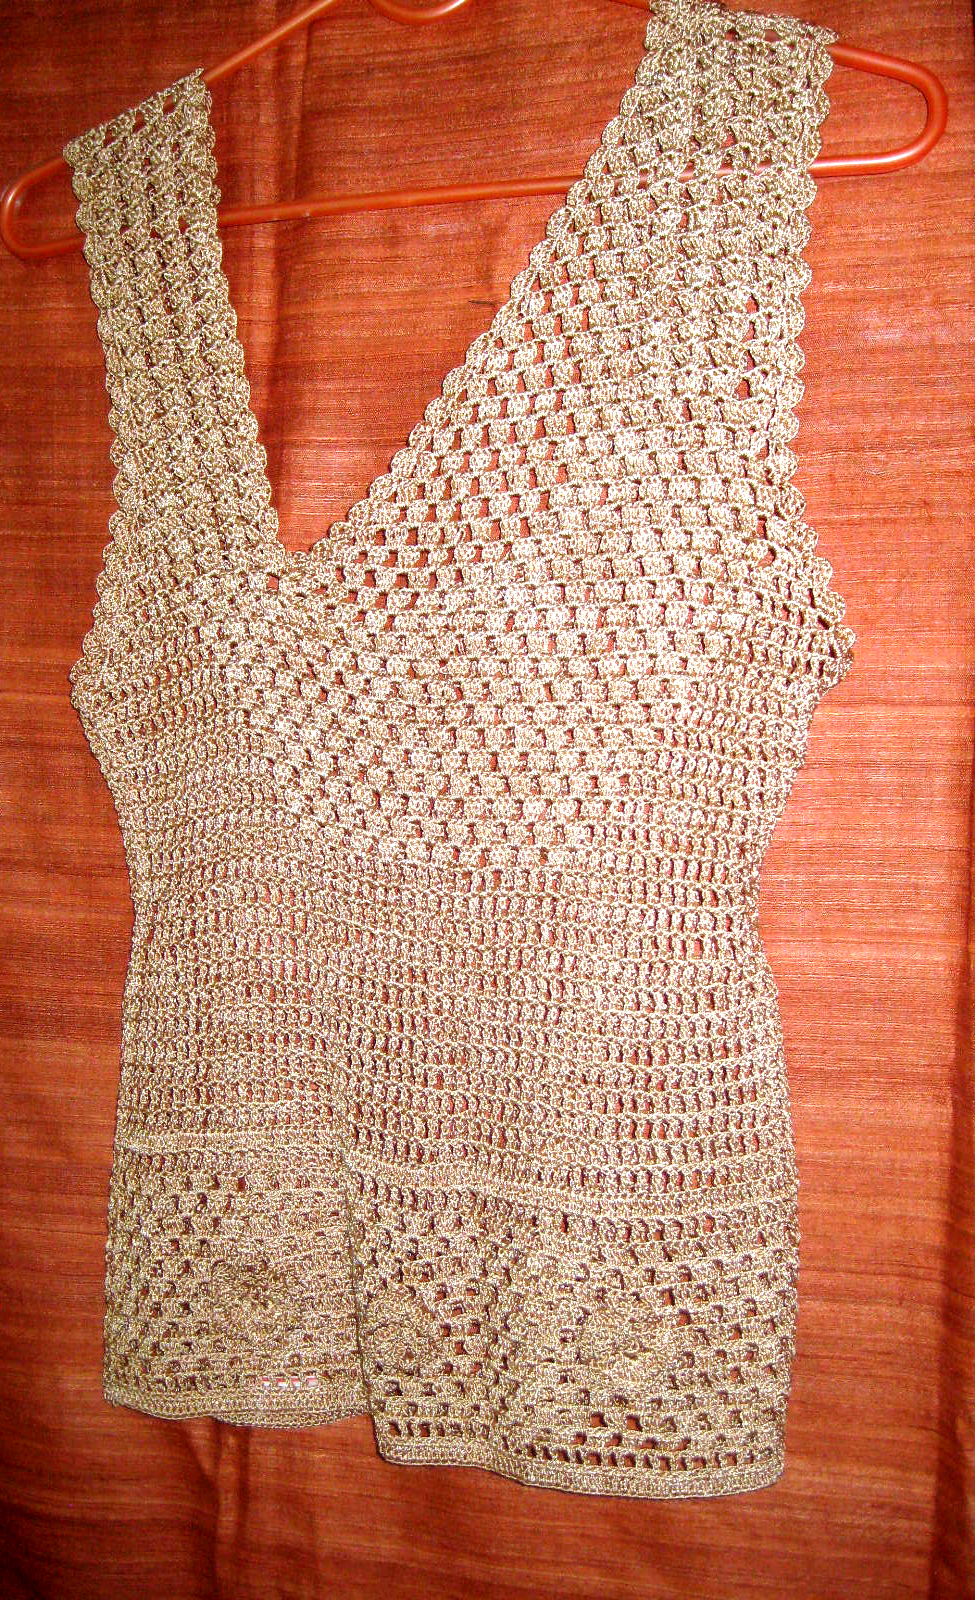 Free Online Crochet Top Patterns : Pin Read-crochet-top-pattern-online-free-fashion on Pinterest